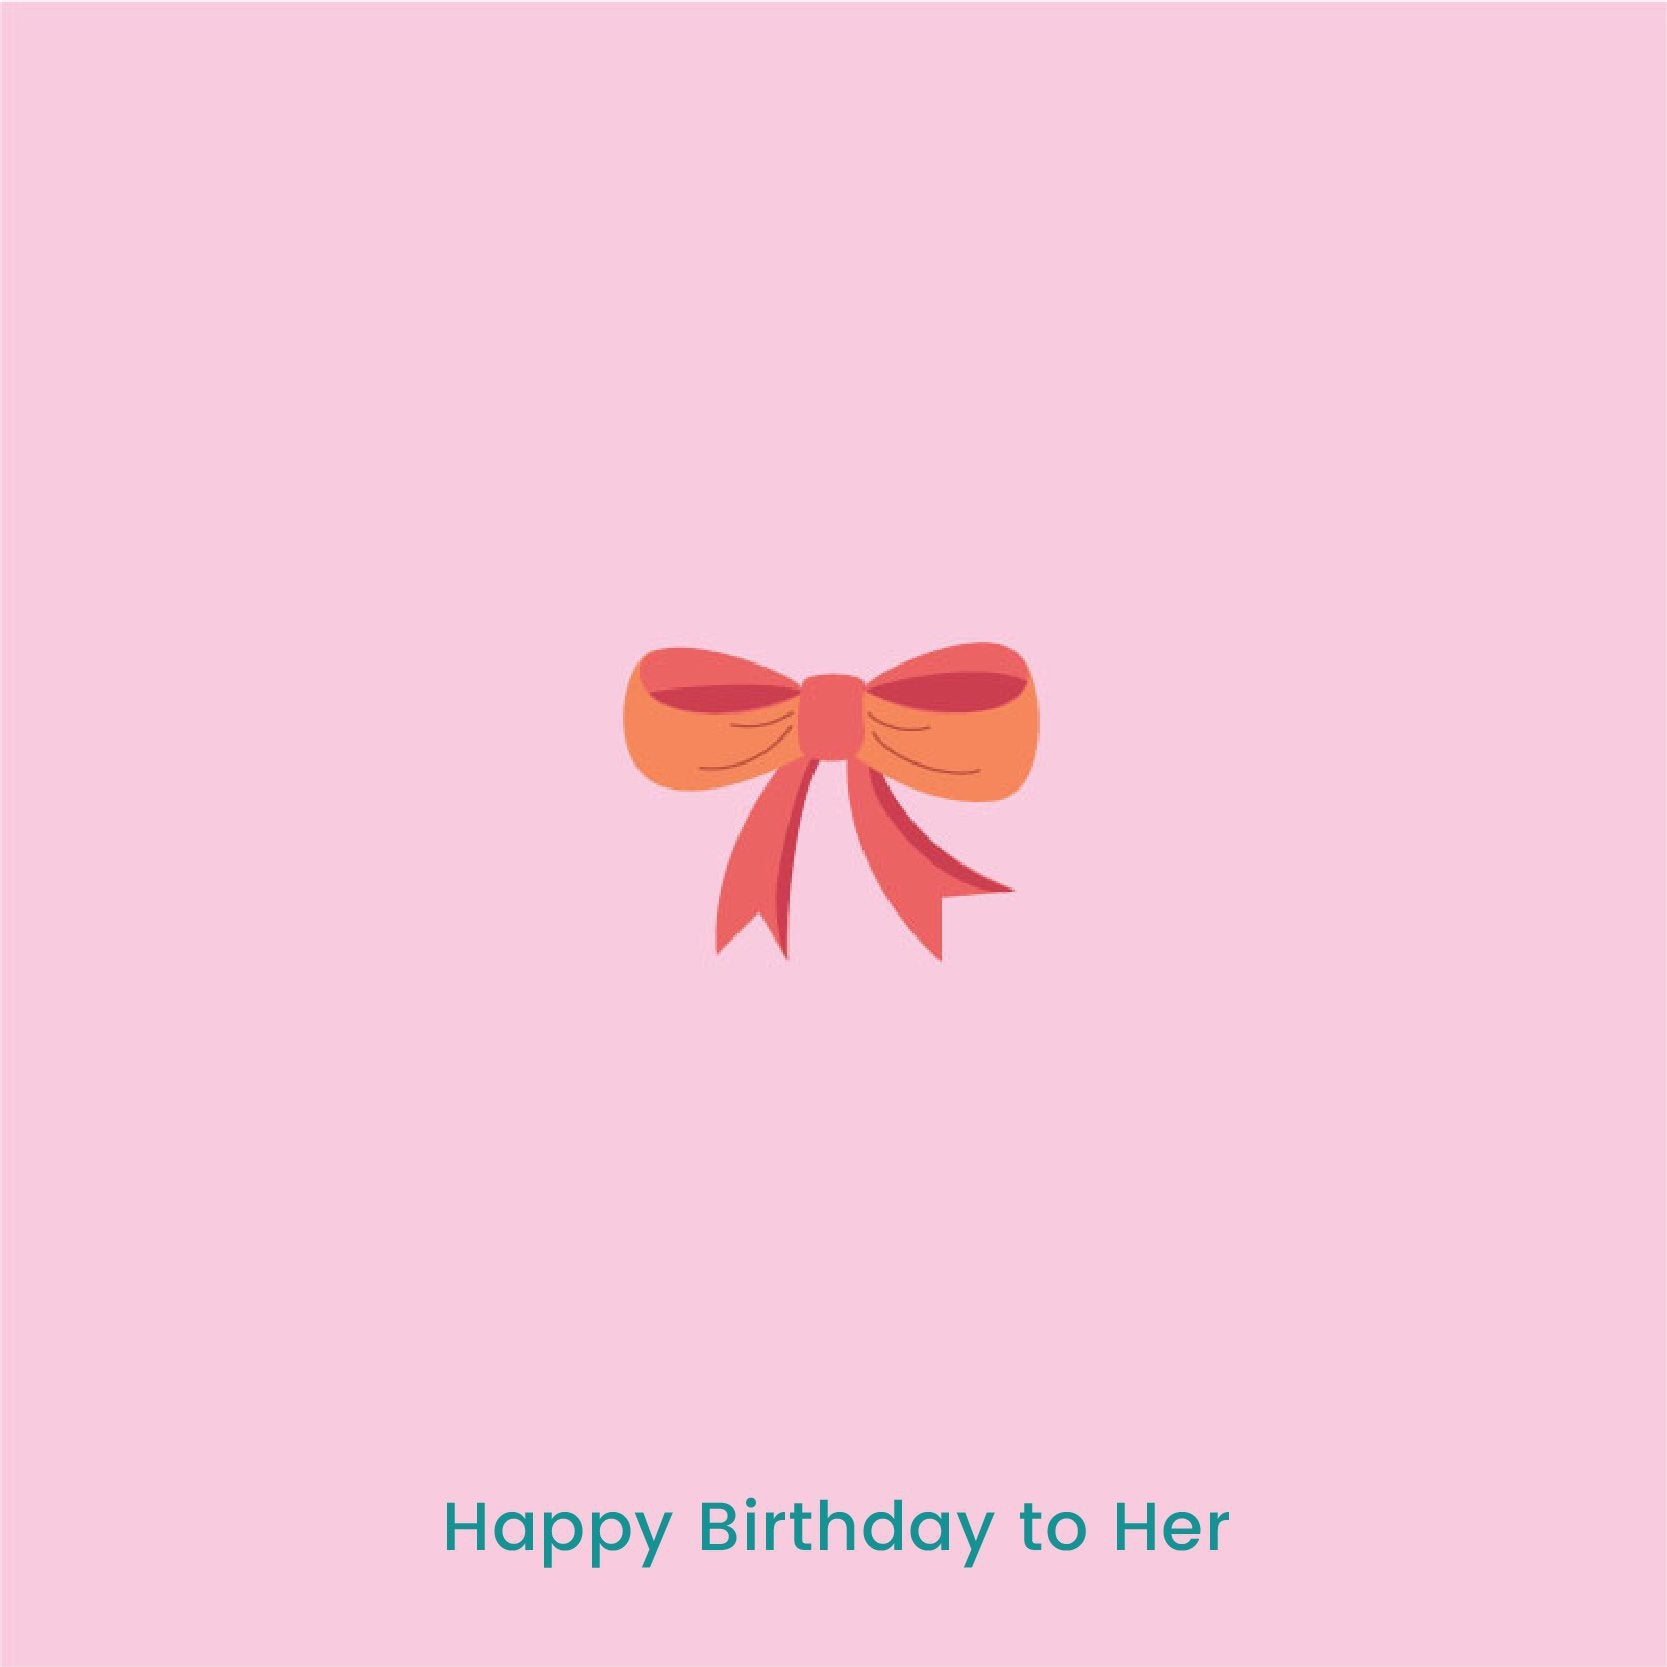 Birthday Teas for Her - Gift Card